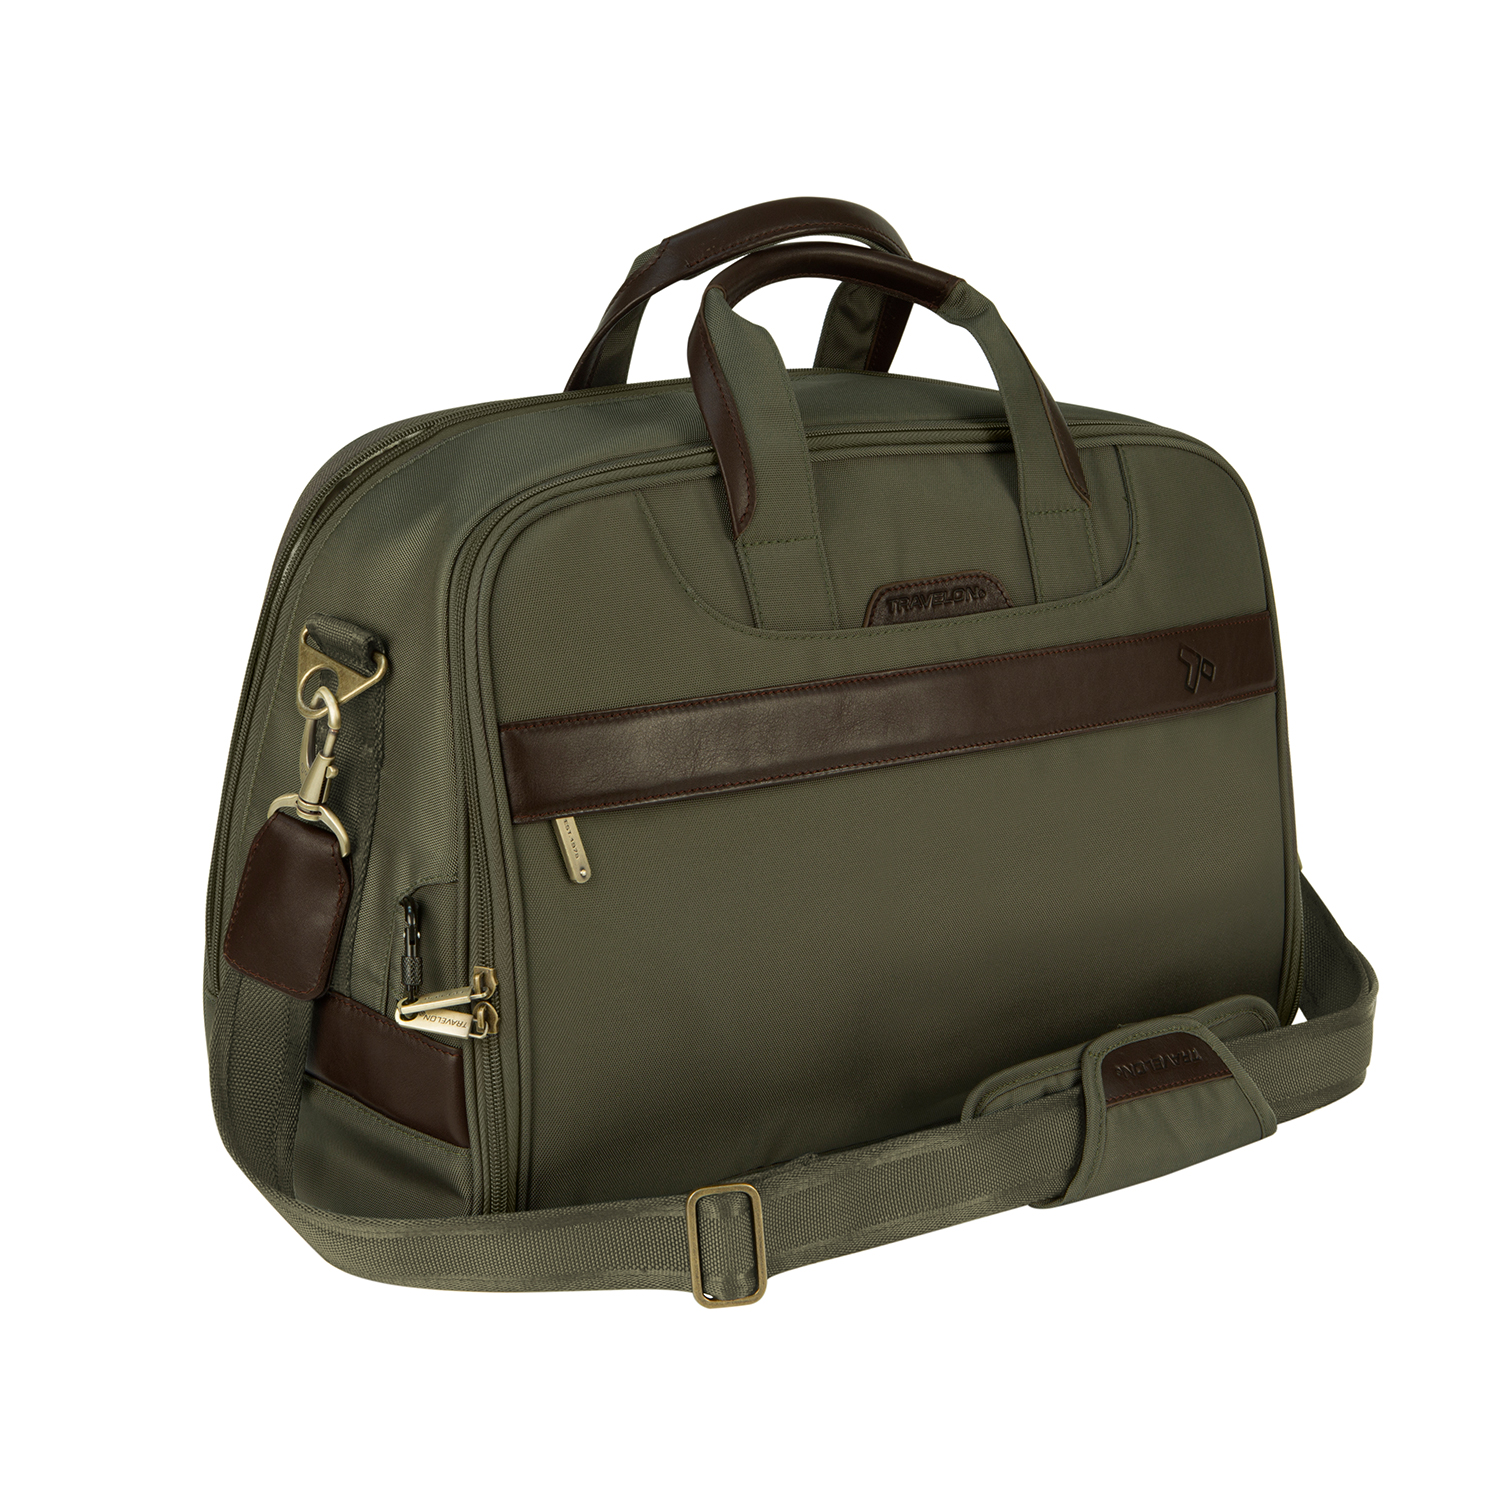 Travelon  Anti Theft Weekender Travel Bag with RFID Blocking